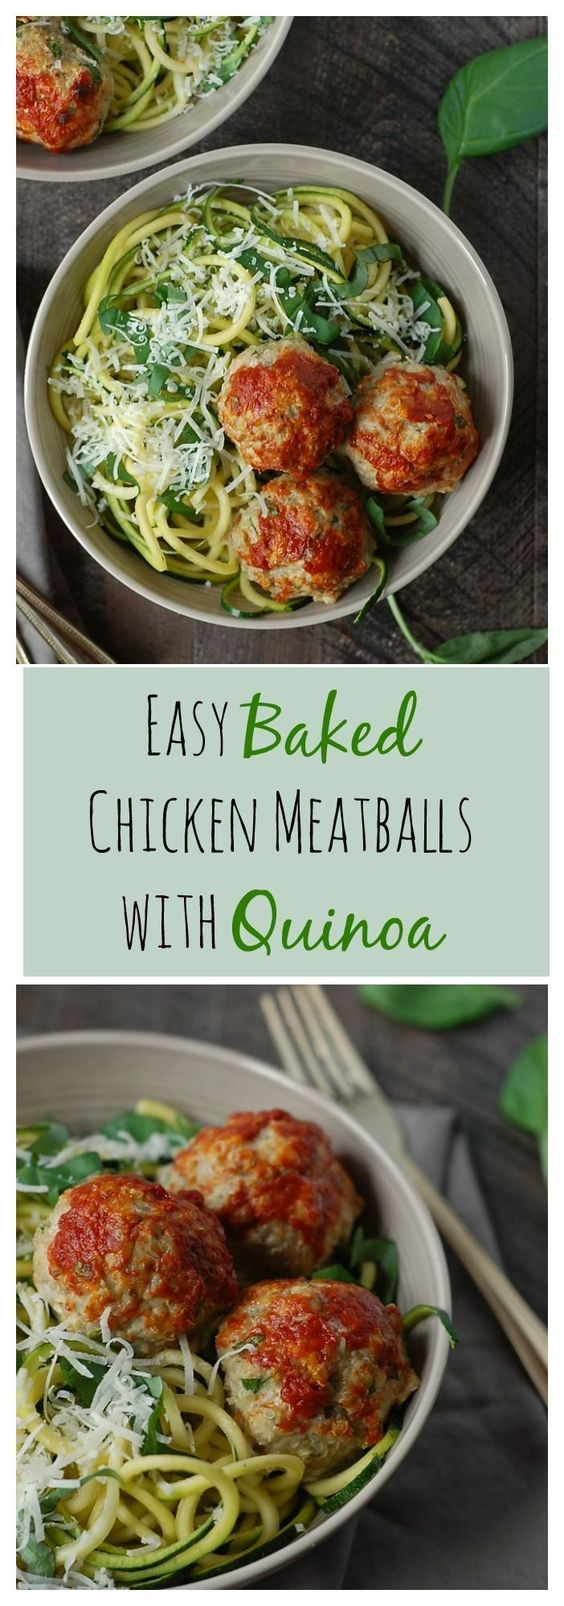 Easy Baked Chicken Meatballs With Quinoa